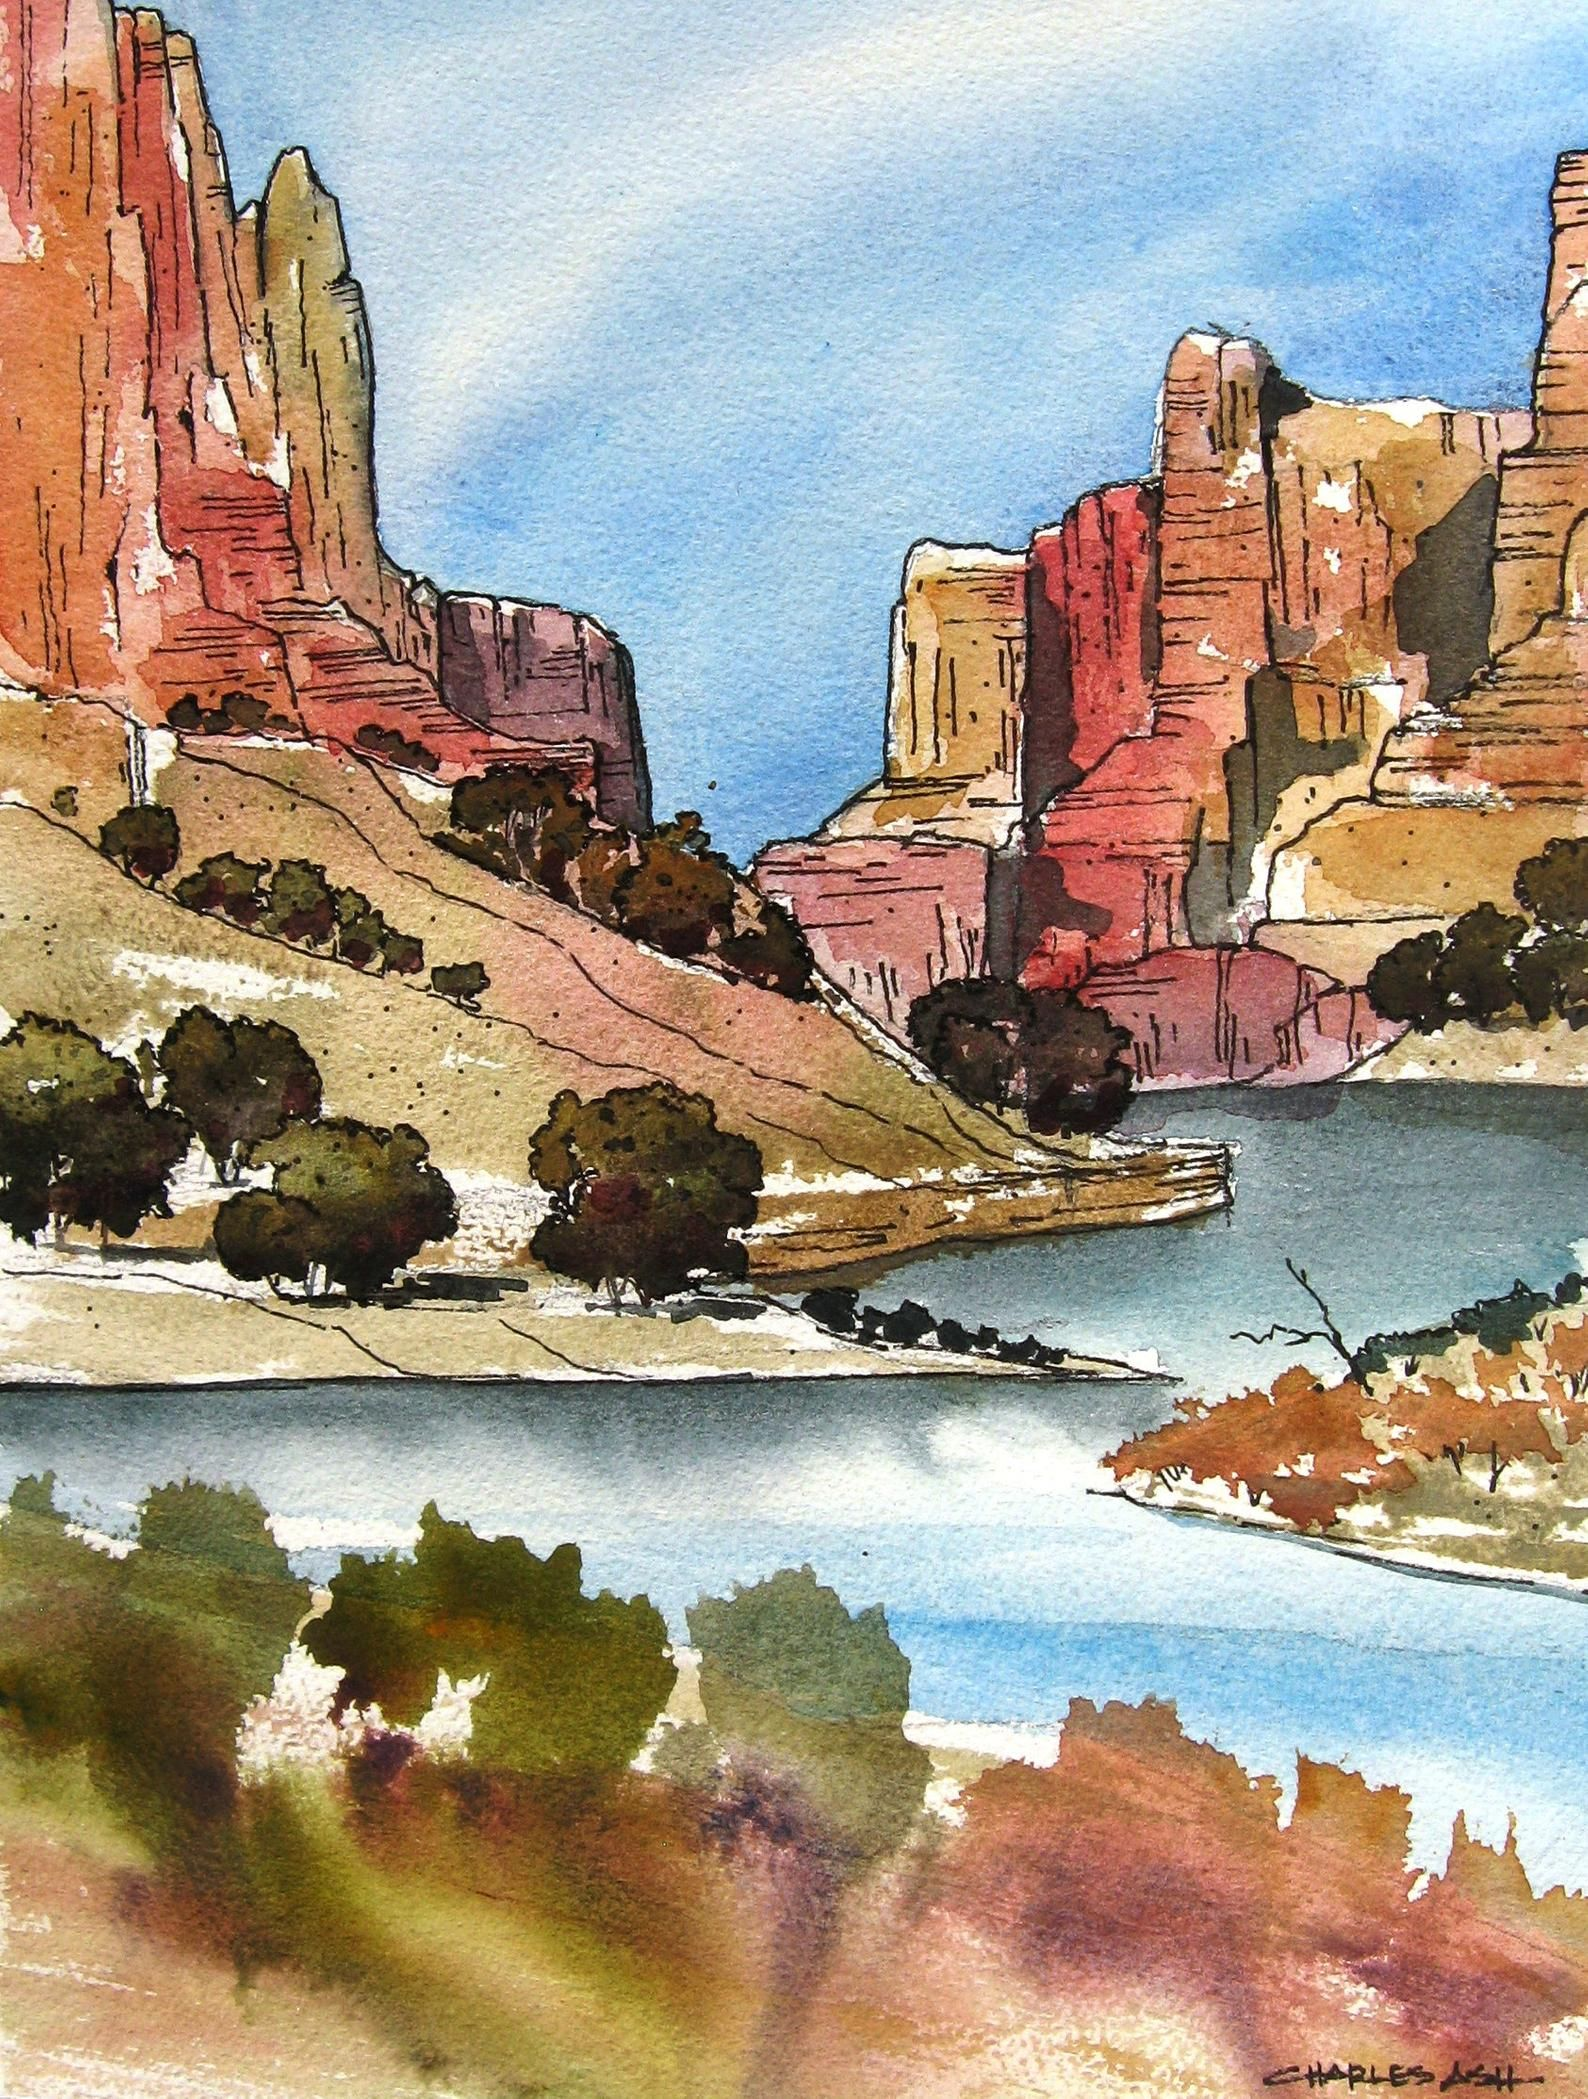 Little Colorado River Original Watercolor Painting Etsy